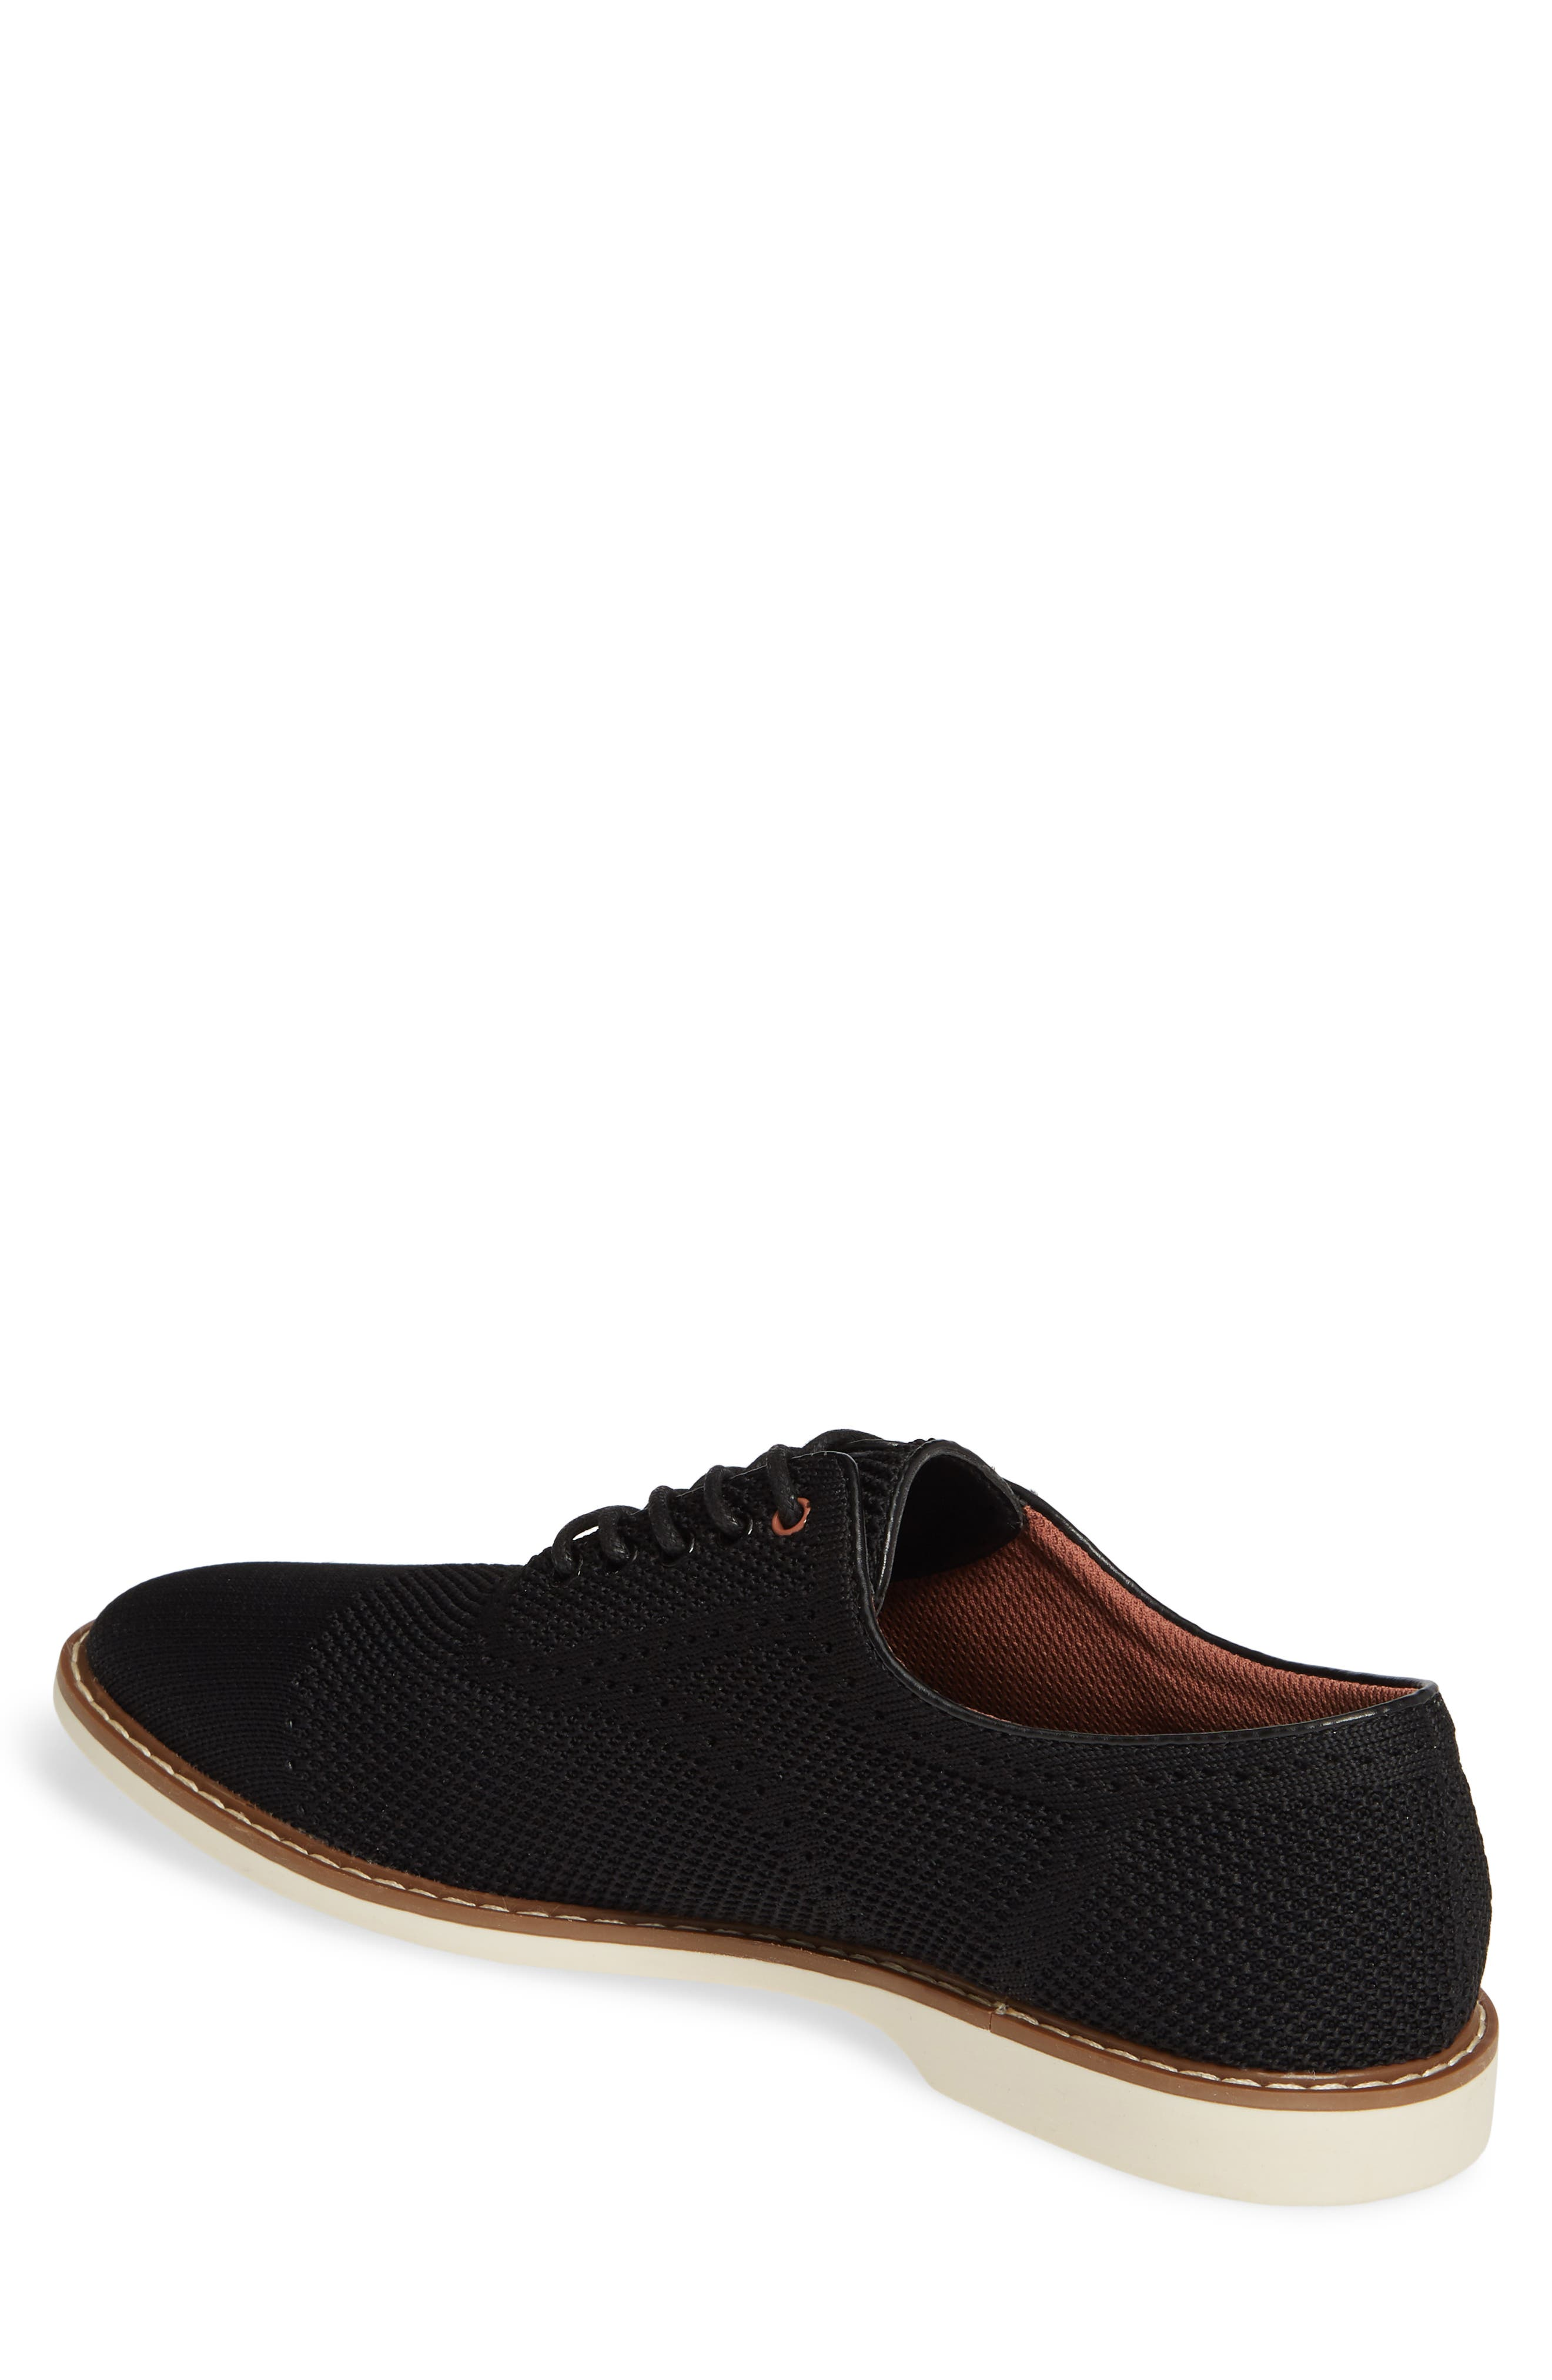 0b09938898a2 Men's The Rail Oxfords & Derby Shoes | Nordstrom